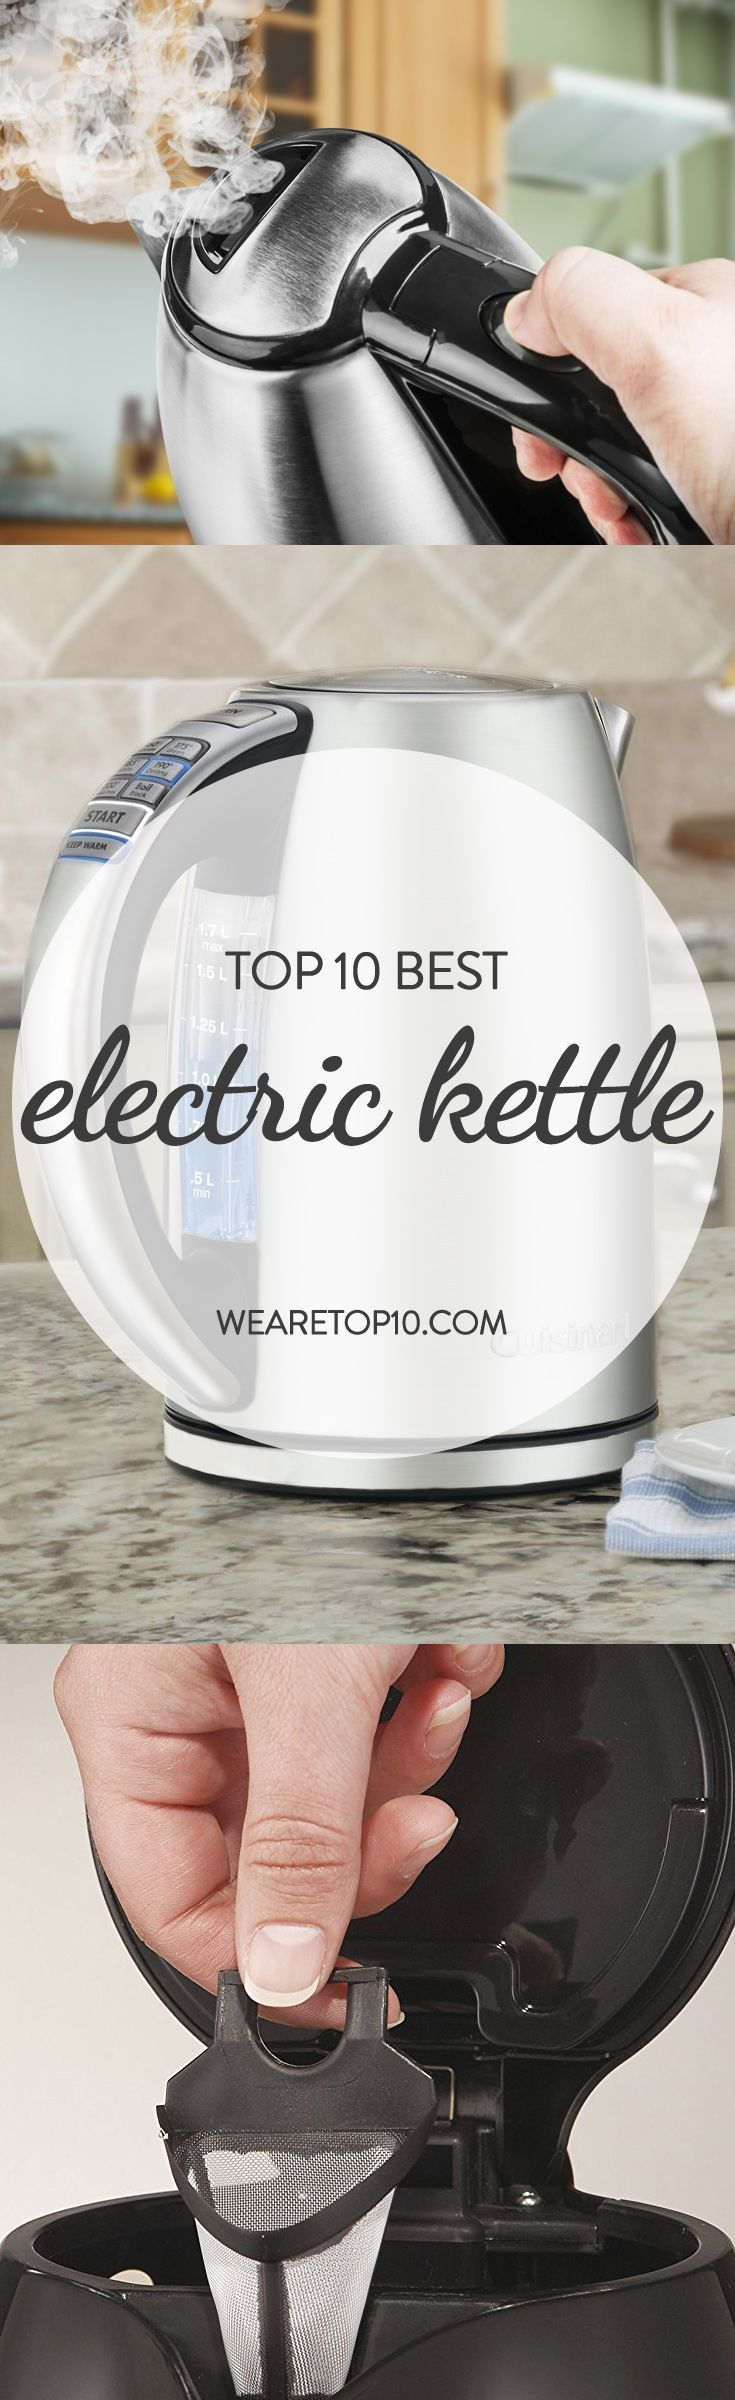 Today, you can easily find gazillions of electric kettles, but not every product is up to the mark so you have to make a wise decision at the right time. To assist you, we compiled the Top 10 Best Electric Kettle.